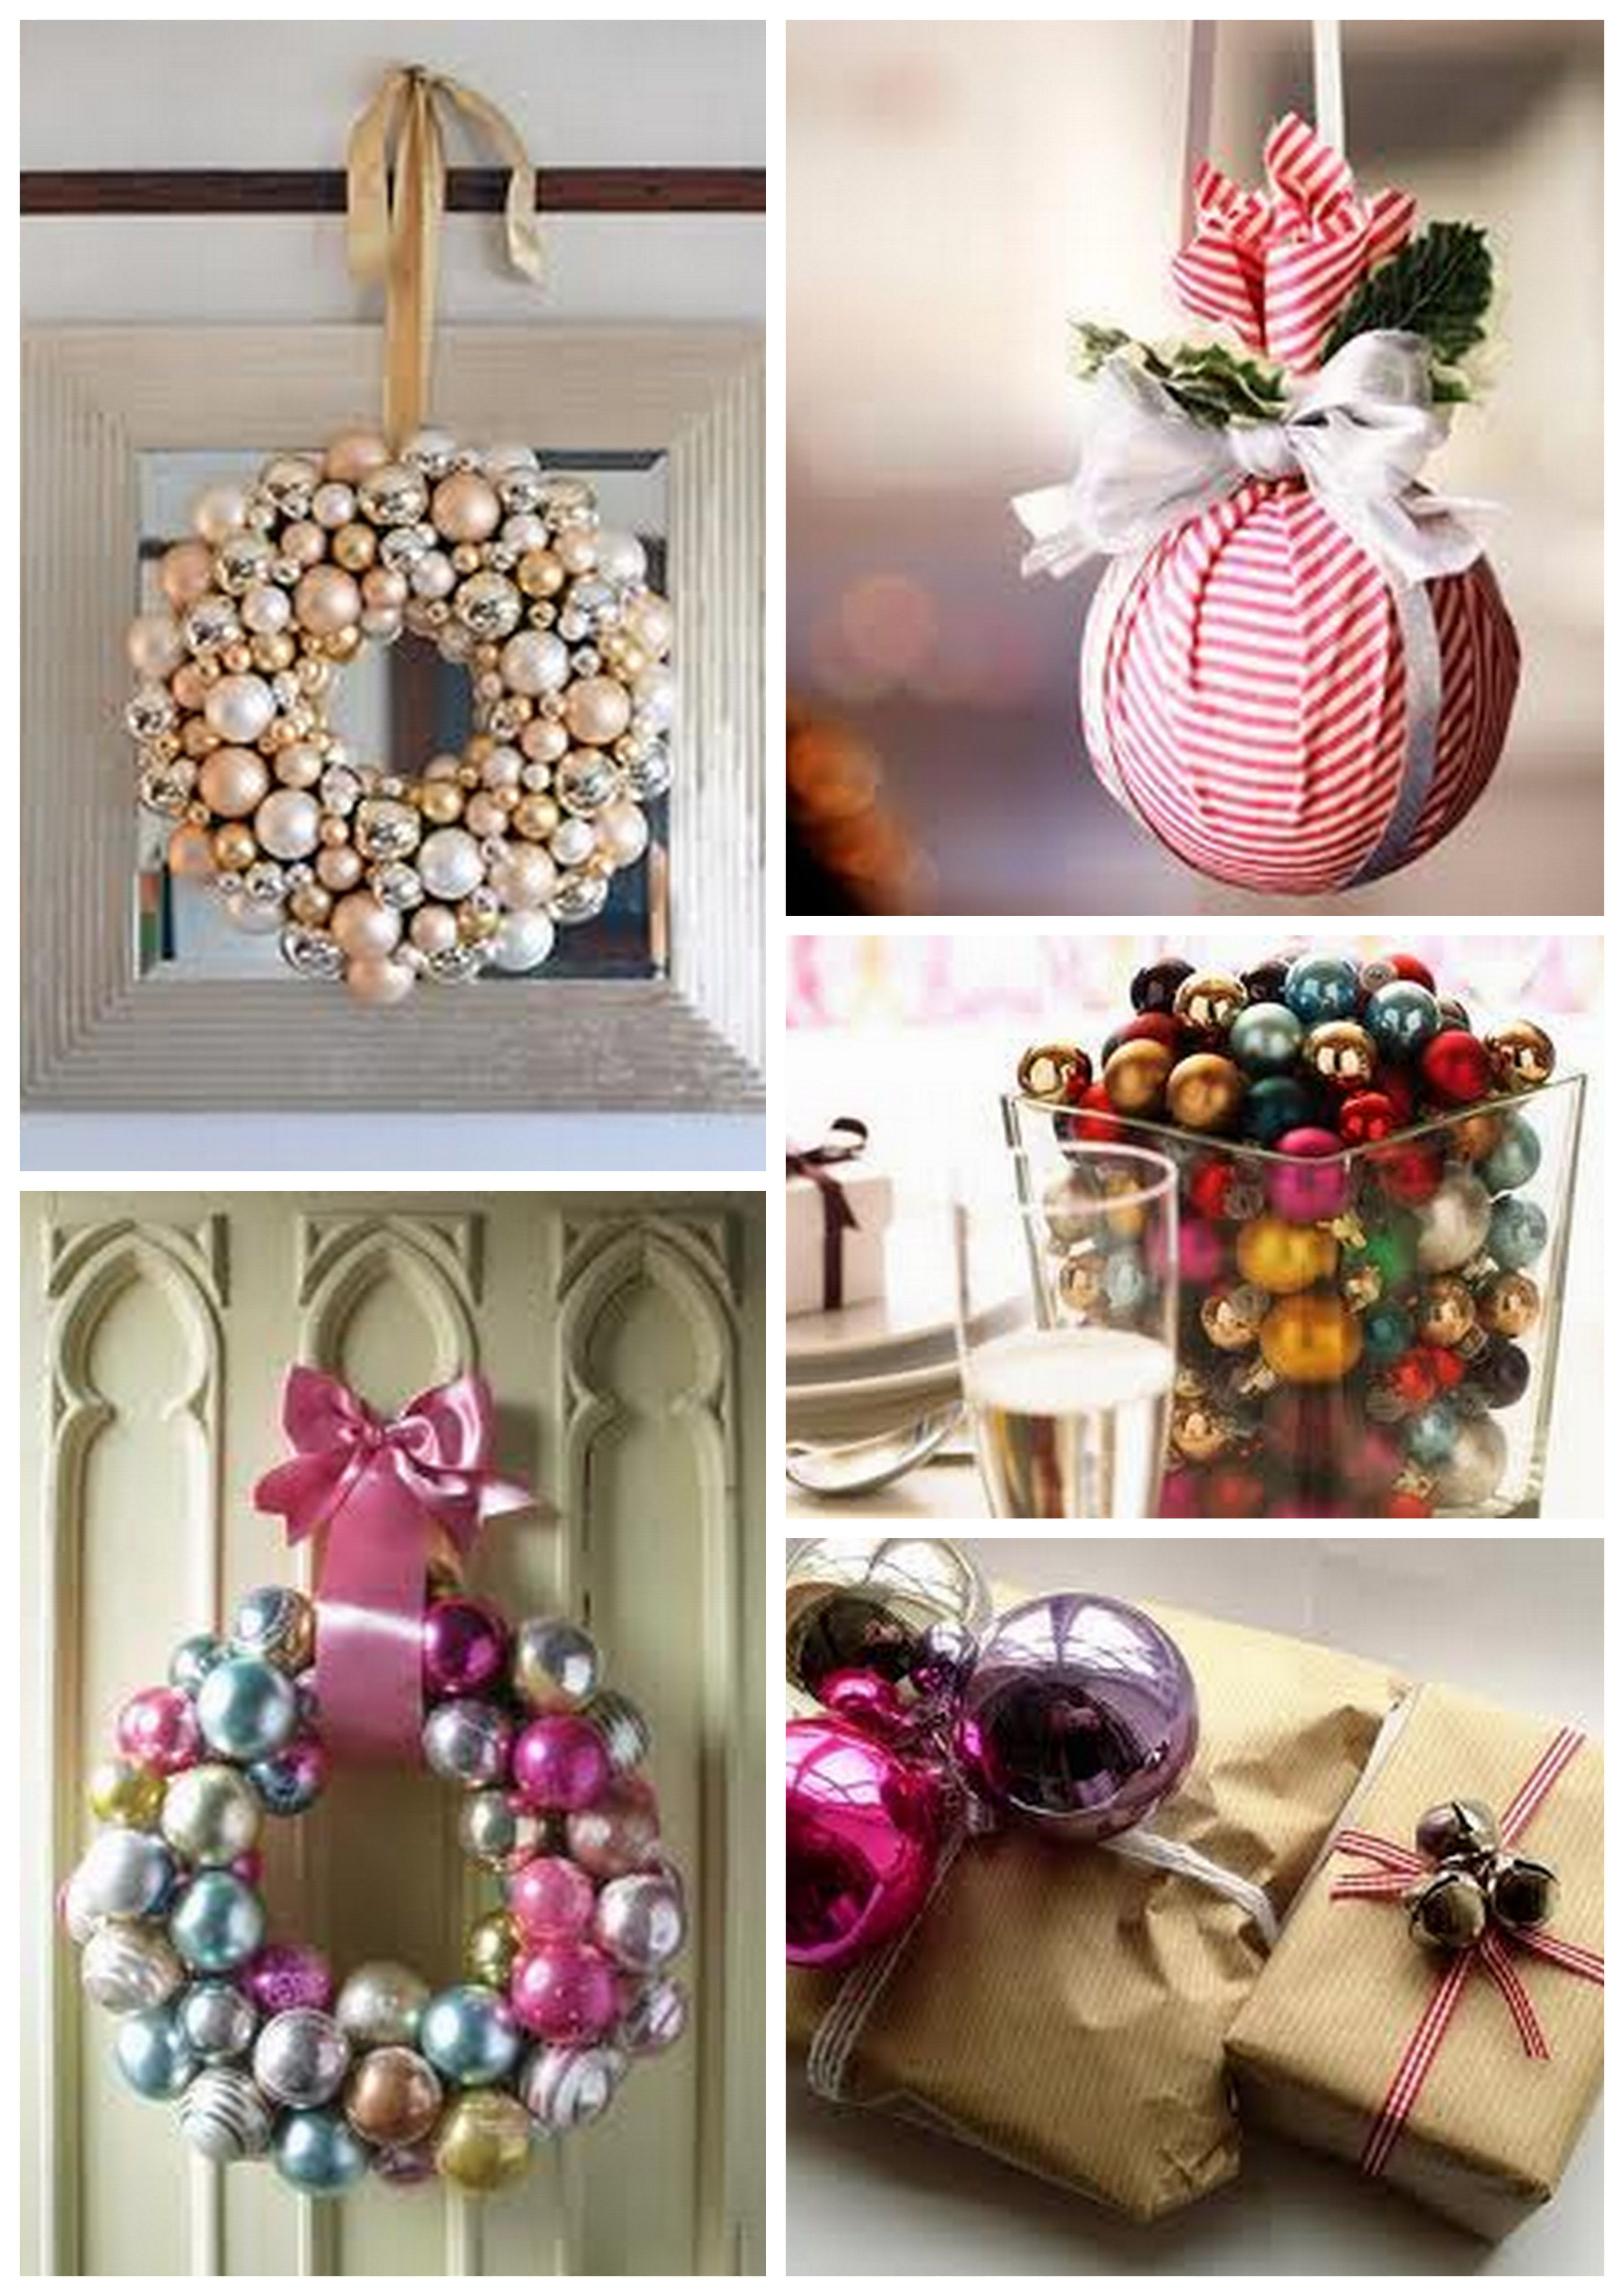 interior design tree - 1000+ images about Making hristmas ornaments on Pinterest ...